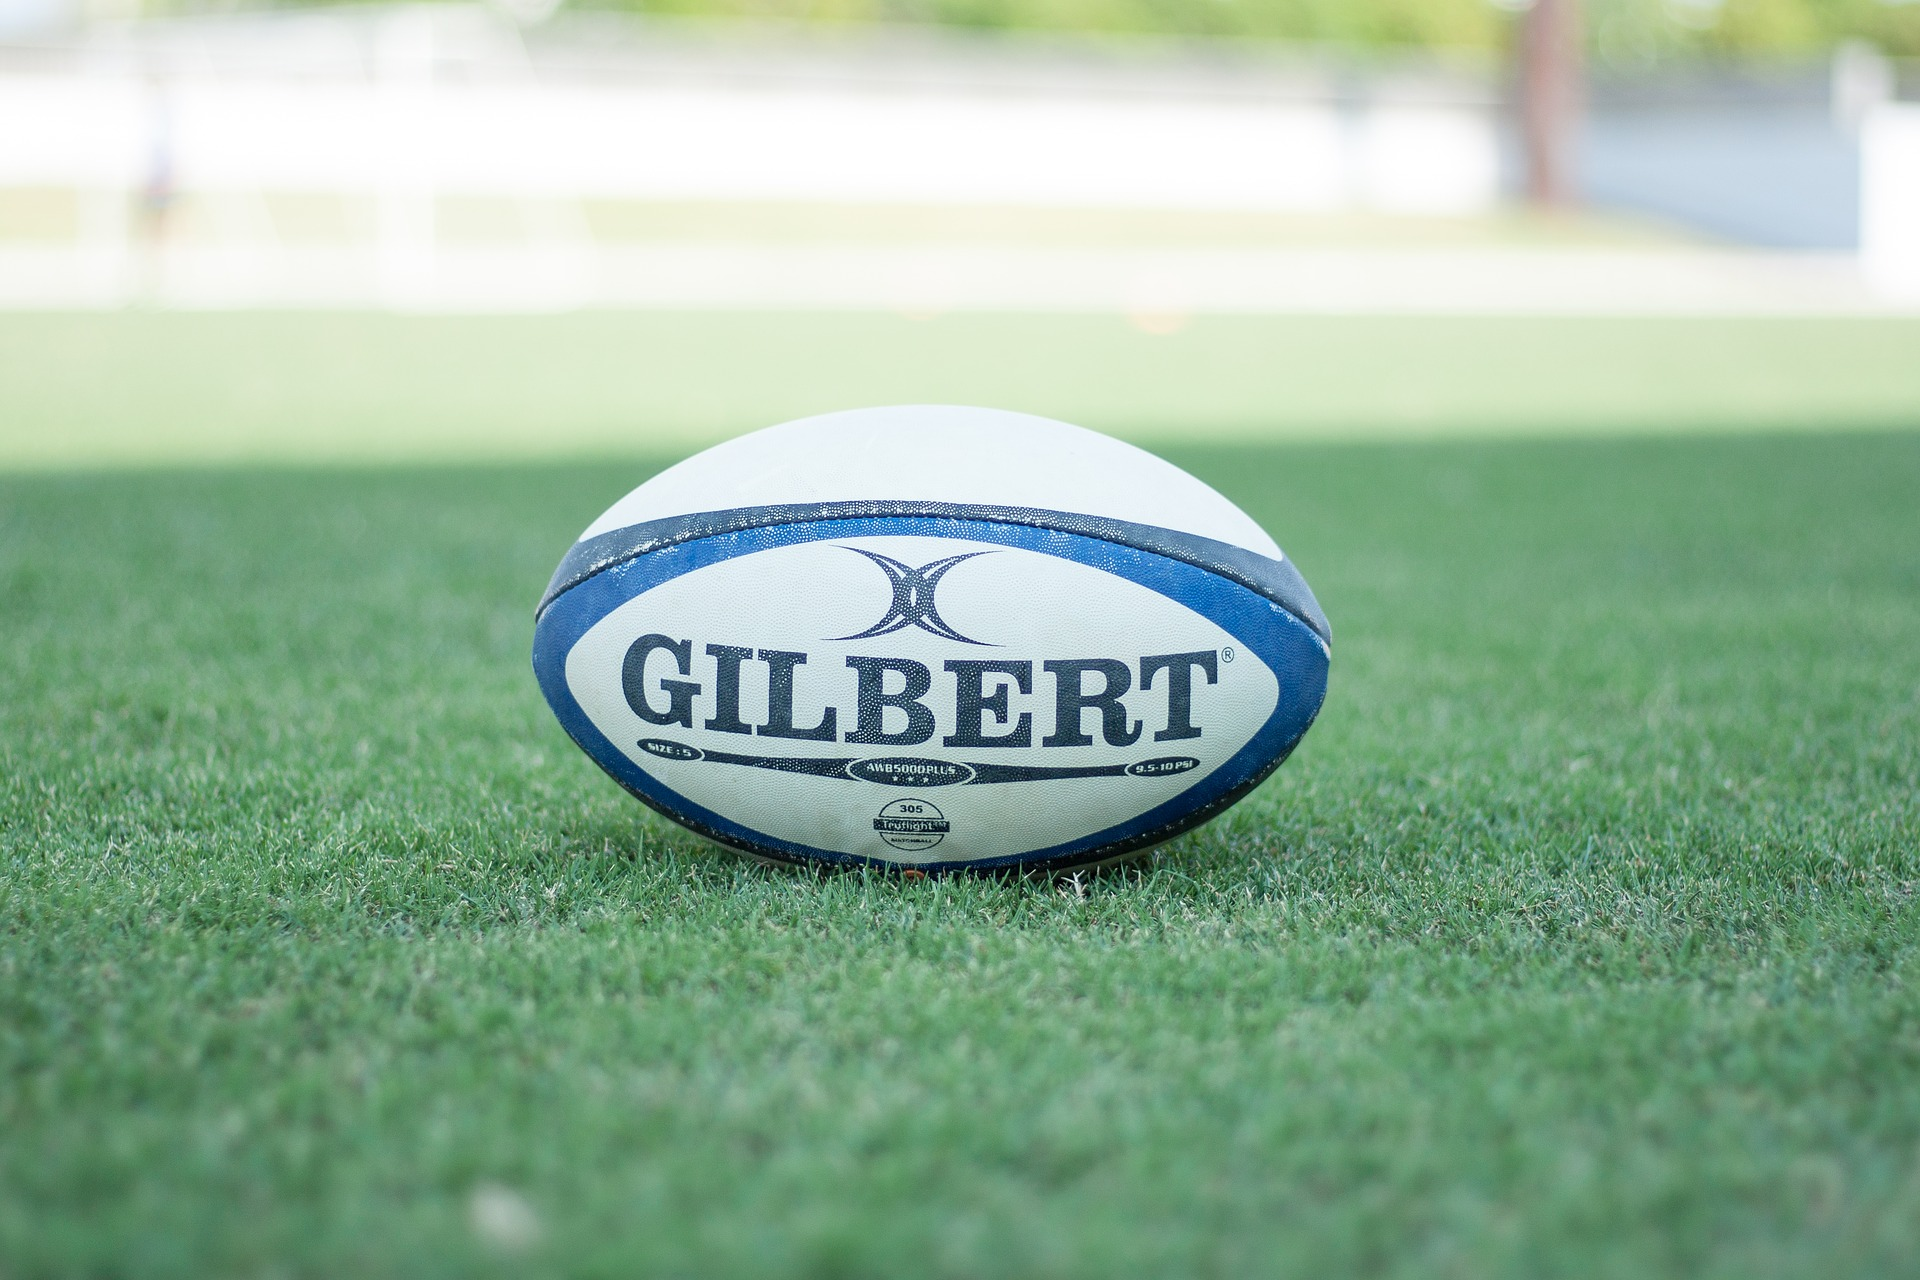 Where does the rugby ball design come from?